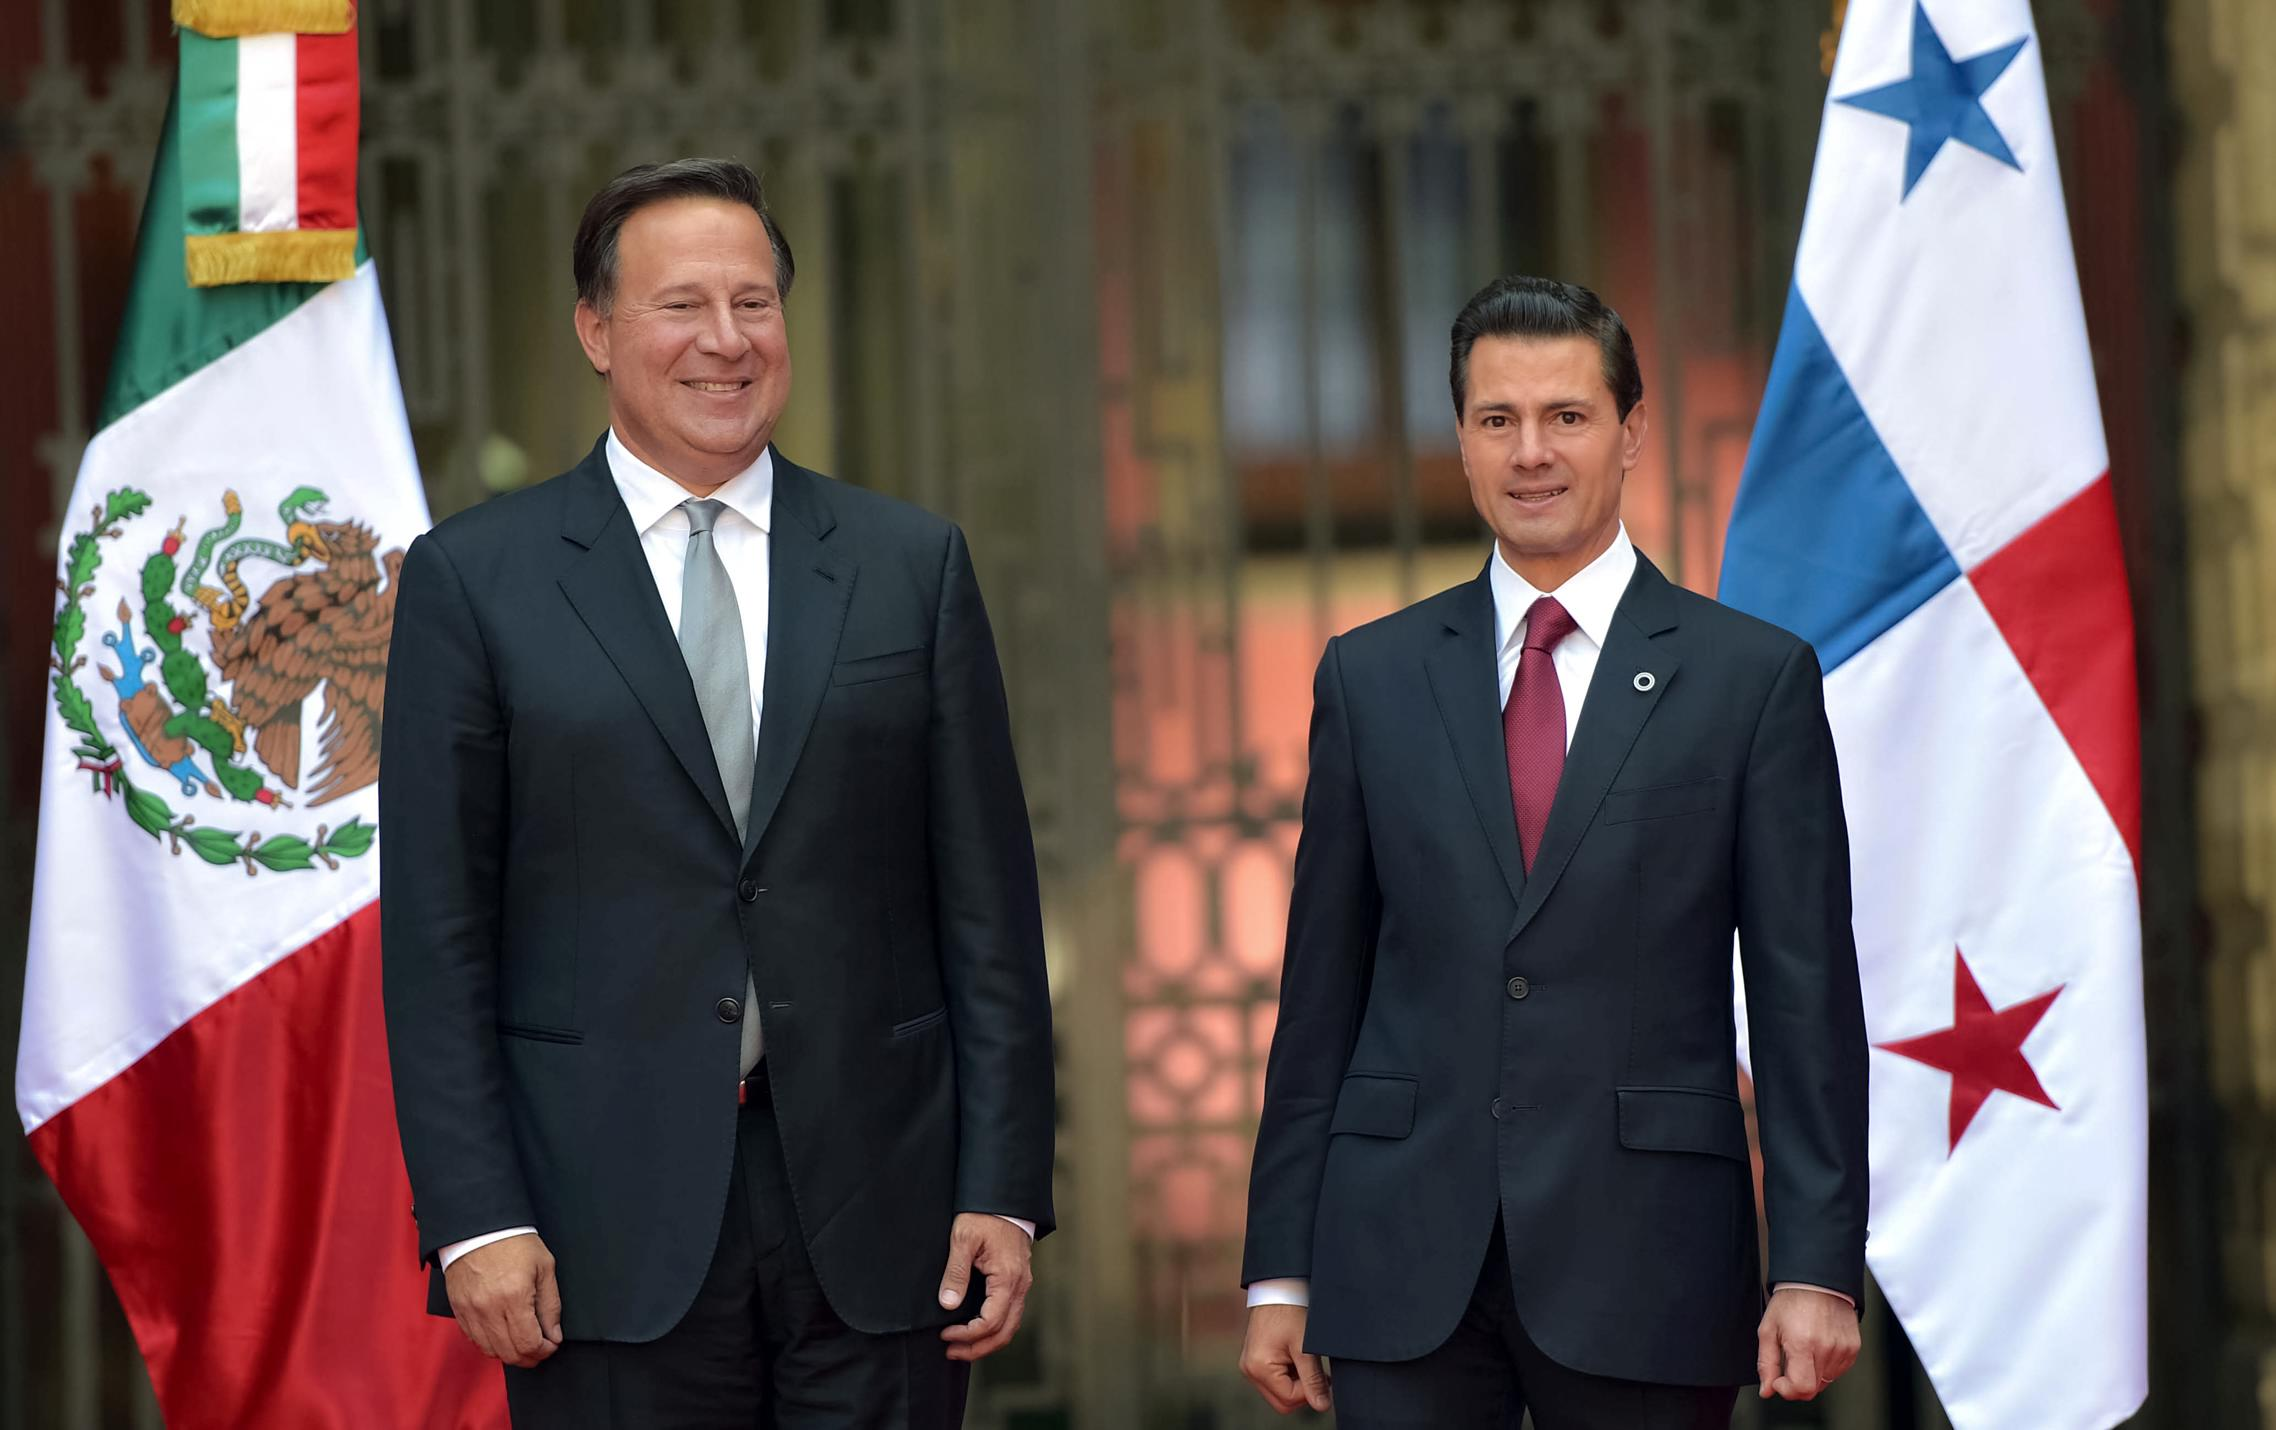 The president received Panamanian President Juan Carlos Varela Rodriguez, currently on an official visit to Mexico, at the National Palace.